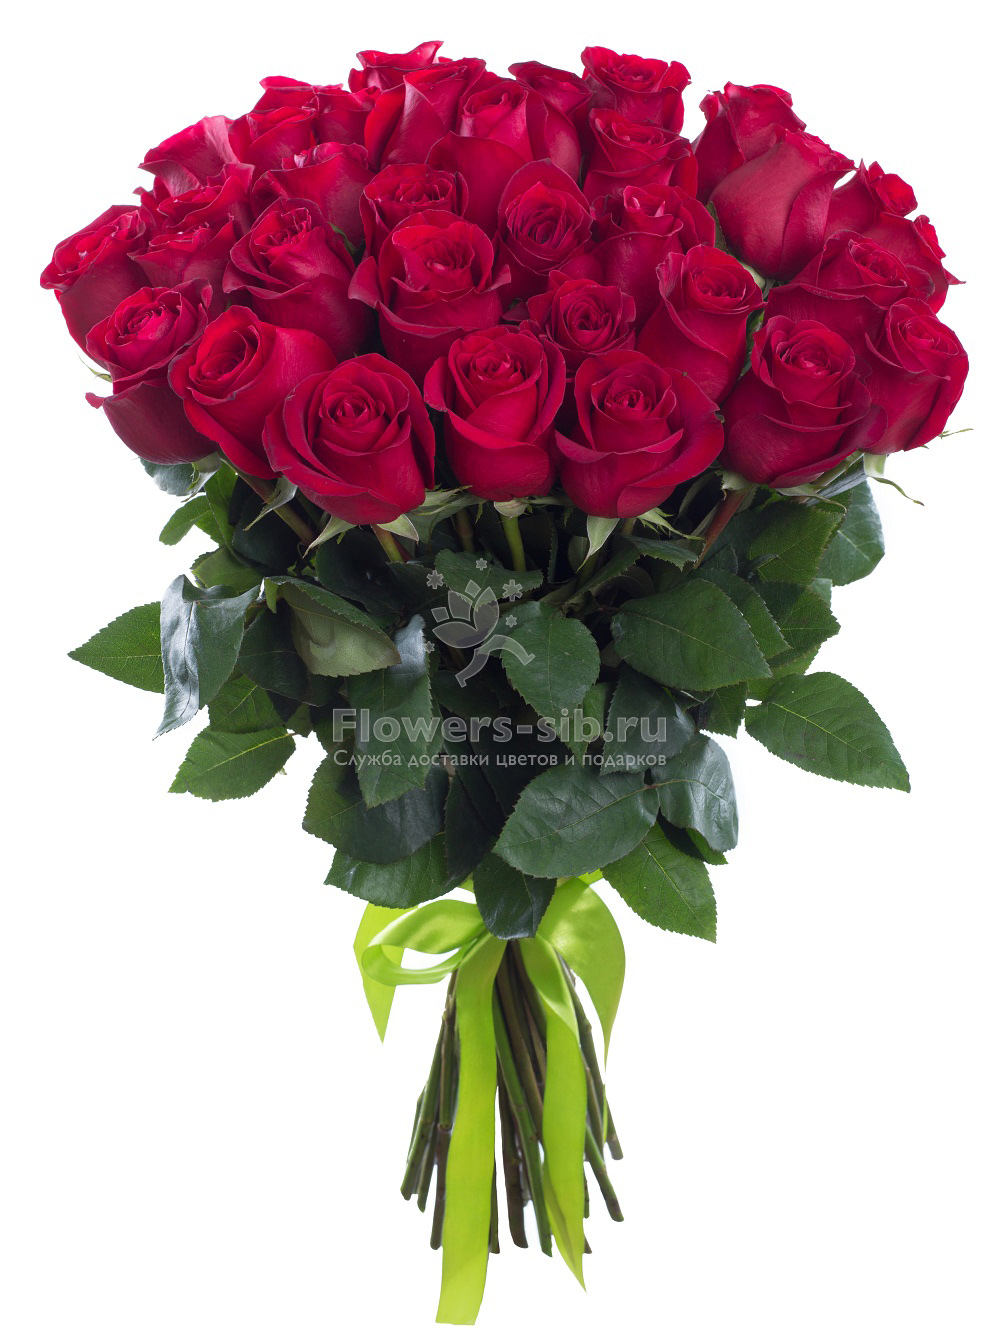 Bouquet Of 37 Roses At The Price 4000 Efficient Delivery Of